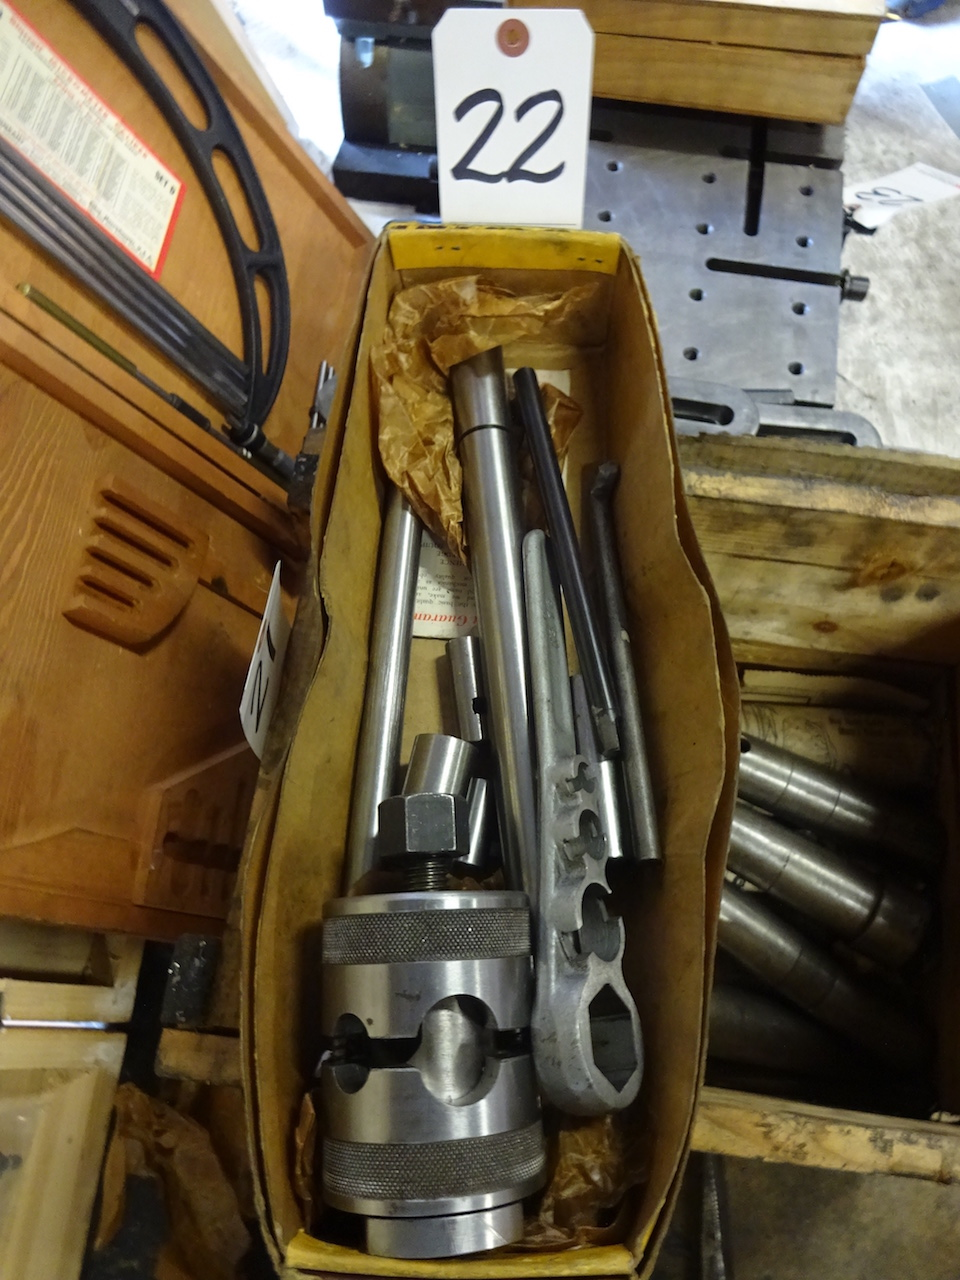 Lot 22 - Armstrong Tool Holder